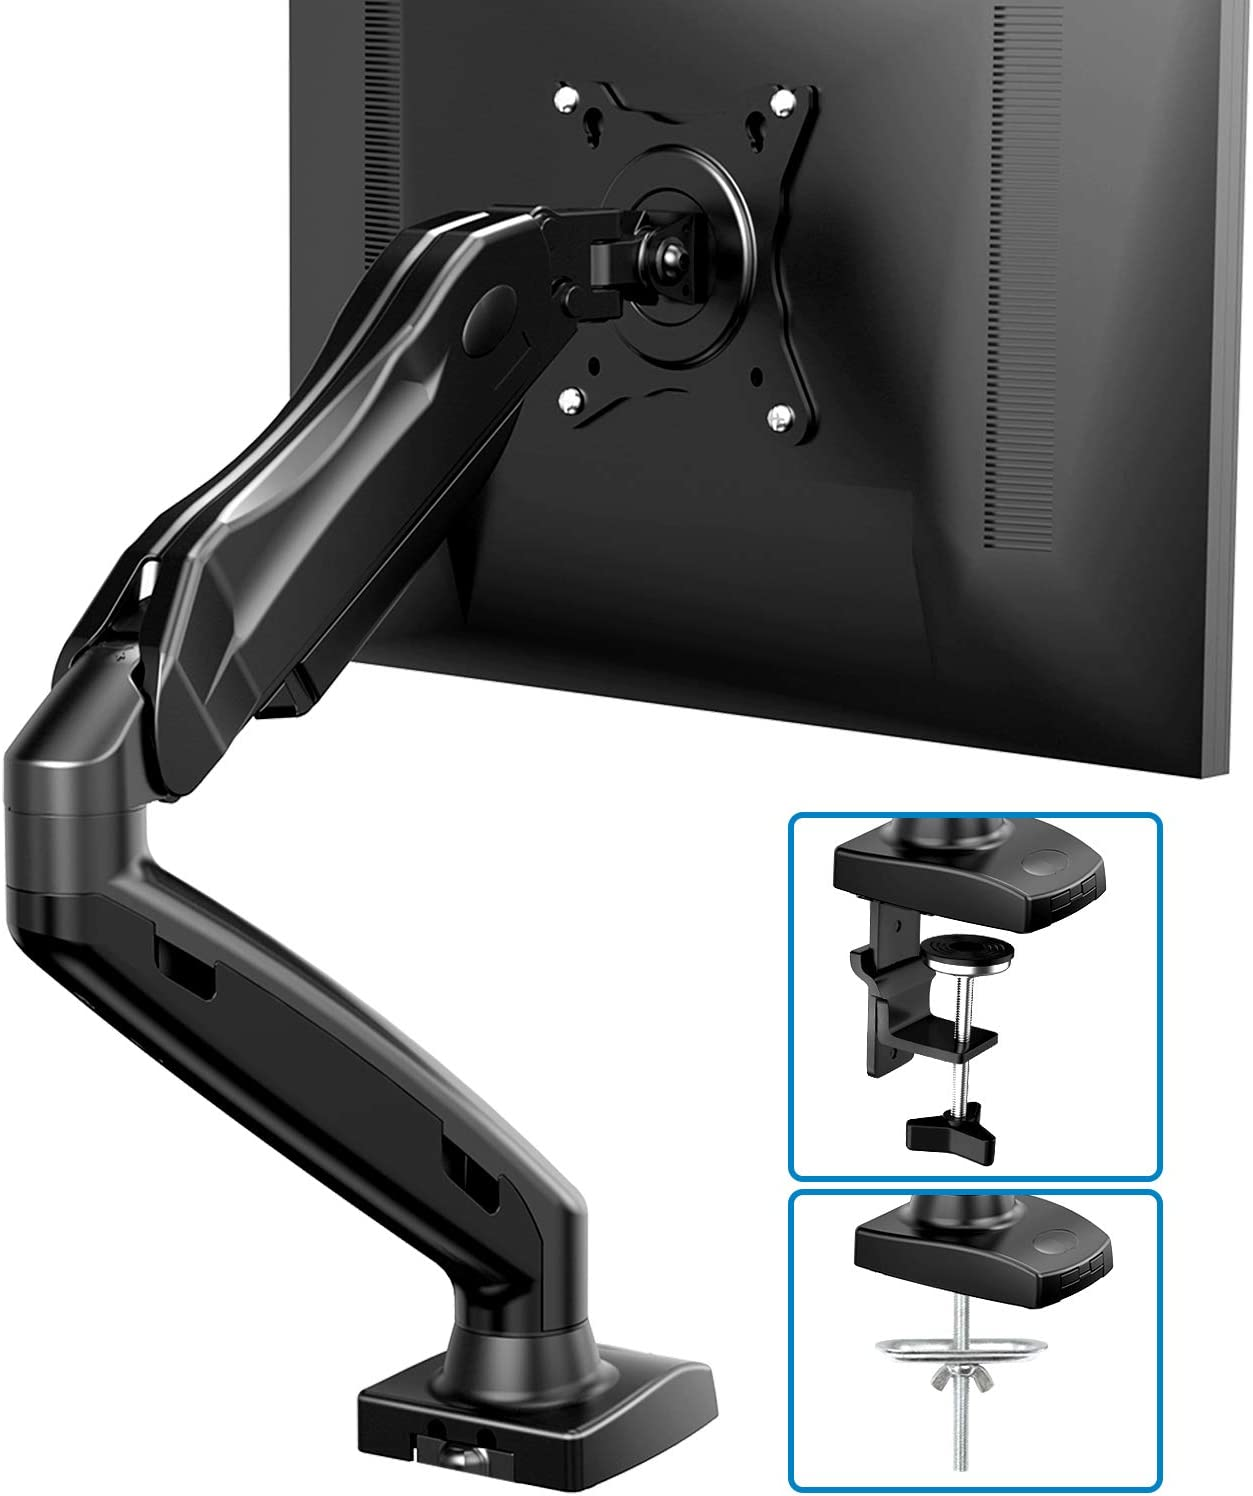 Single Monitor Mount - Articulating Gas Spring Monitor Arm, Adjustable VESA Mount Desk Stand with Clamp and Grommet Base - Fits 17 to 27 Inch LCD Computer Monitors 4.4 to 14.3lbs